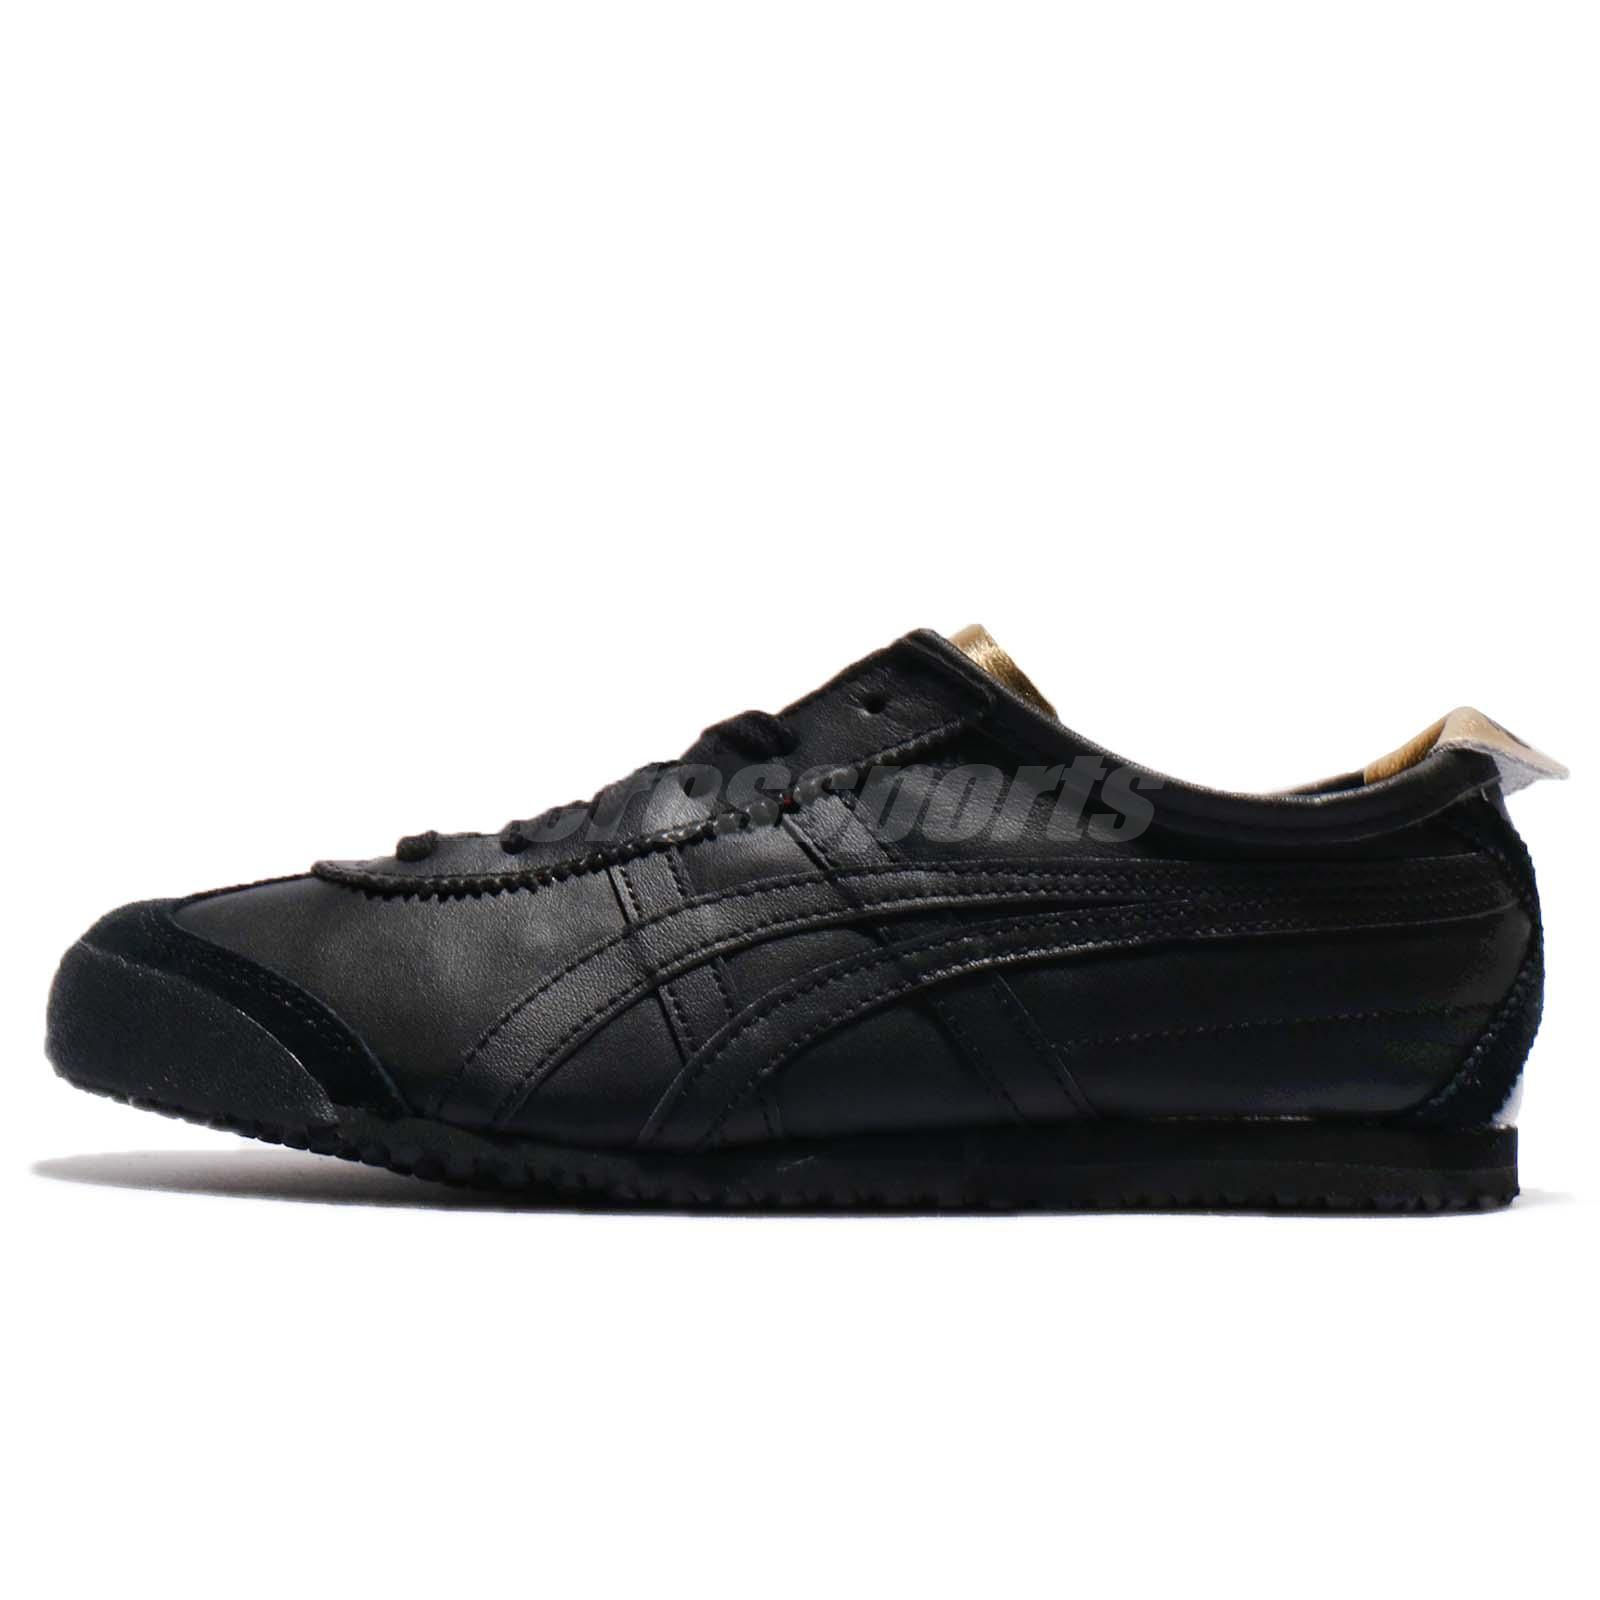 new arrival 83ee8 9d05e Details about Asics Onitsuka Tiger Mexico 66 Triple Black Retro Men Women  Sneakers D7C3L-9090